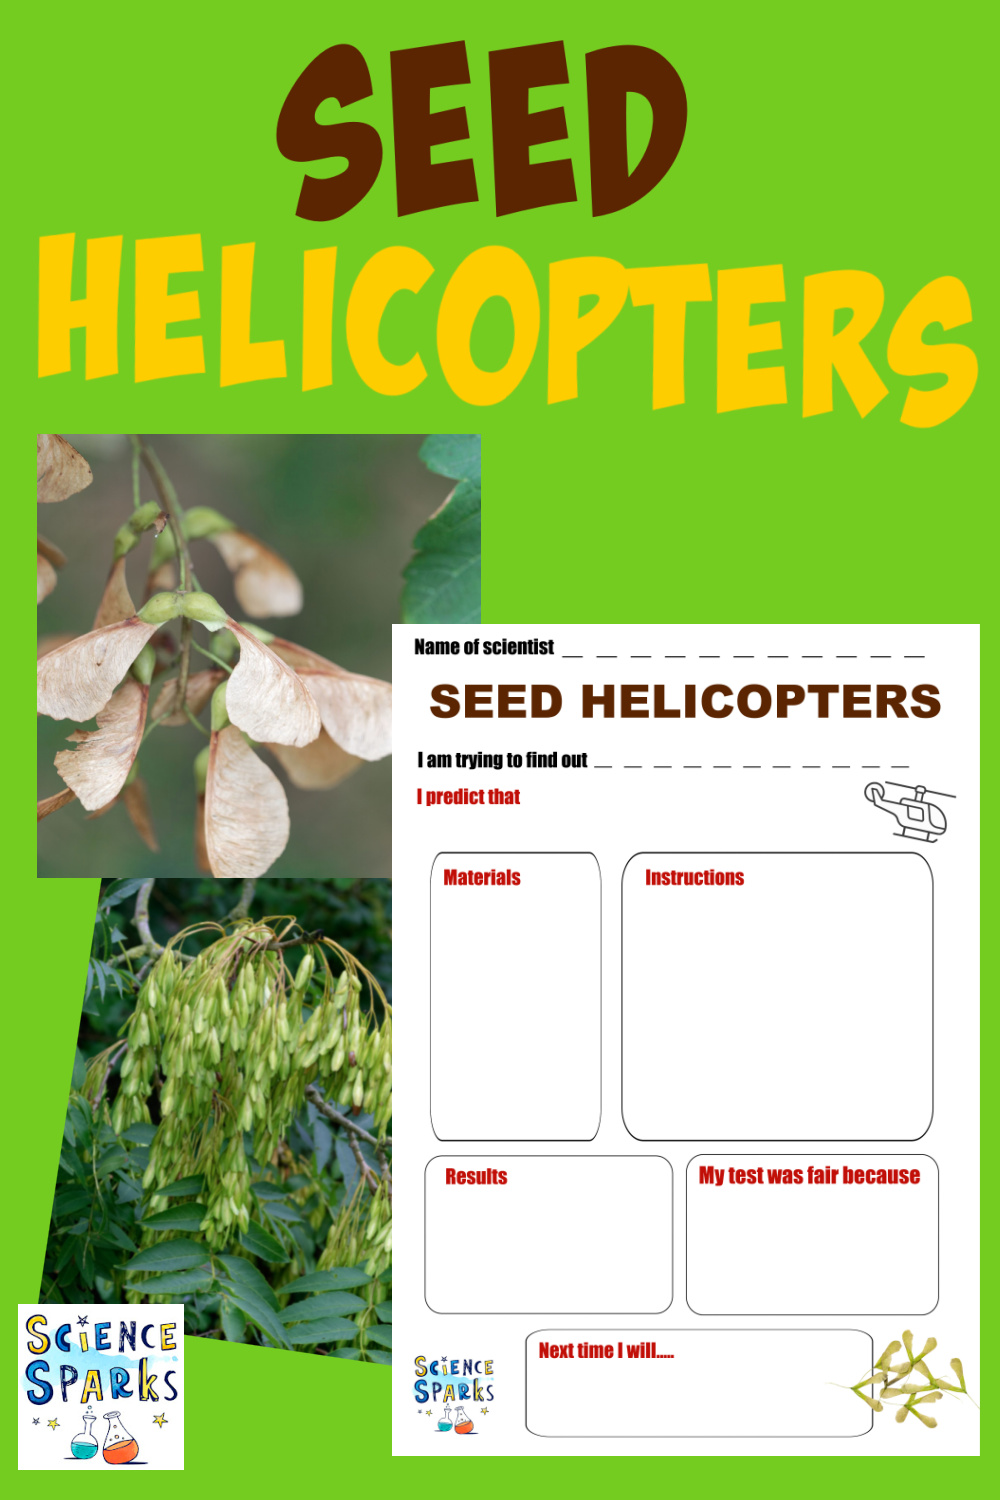 seed helicopter science activity - great autumn science for kids and perfect for learning about seed dispersal.